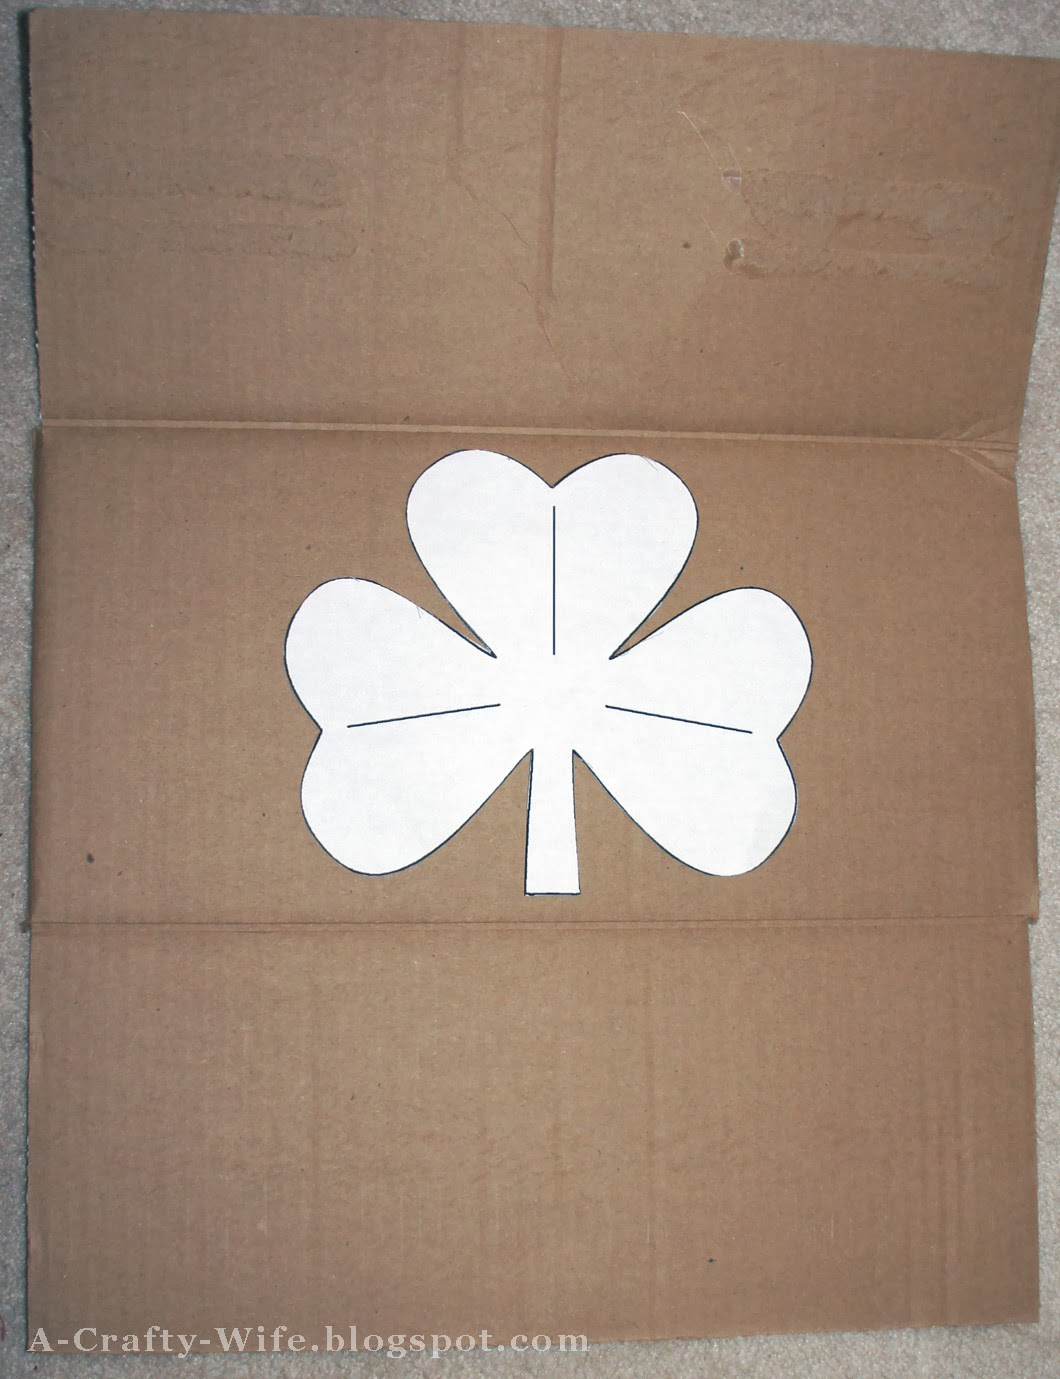 Print shamrock template from computer and trace onto cardboard | A Crafty Wife